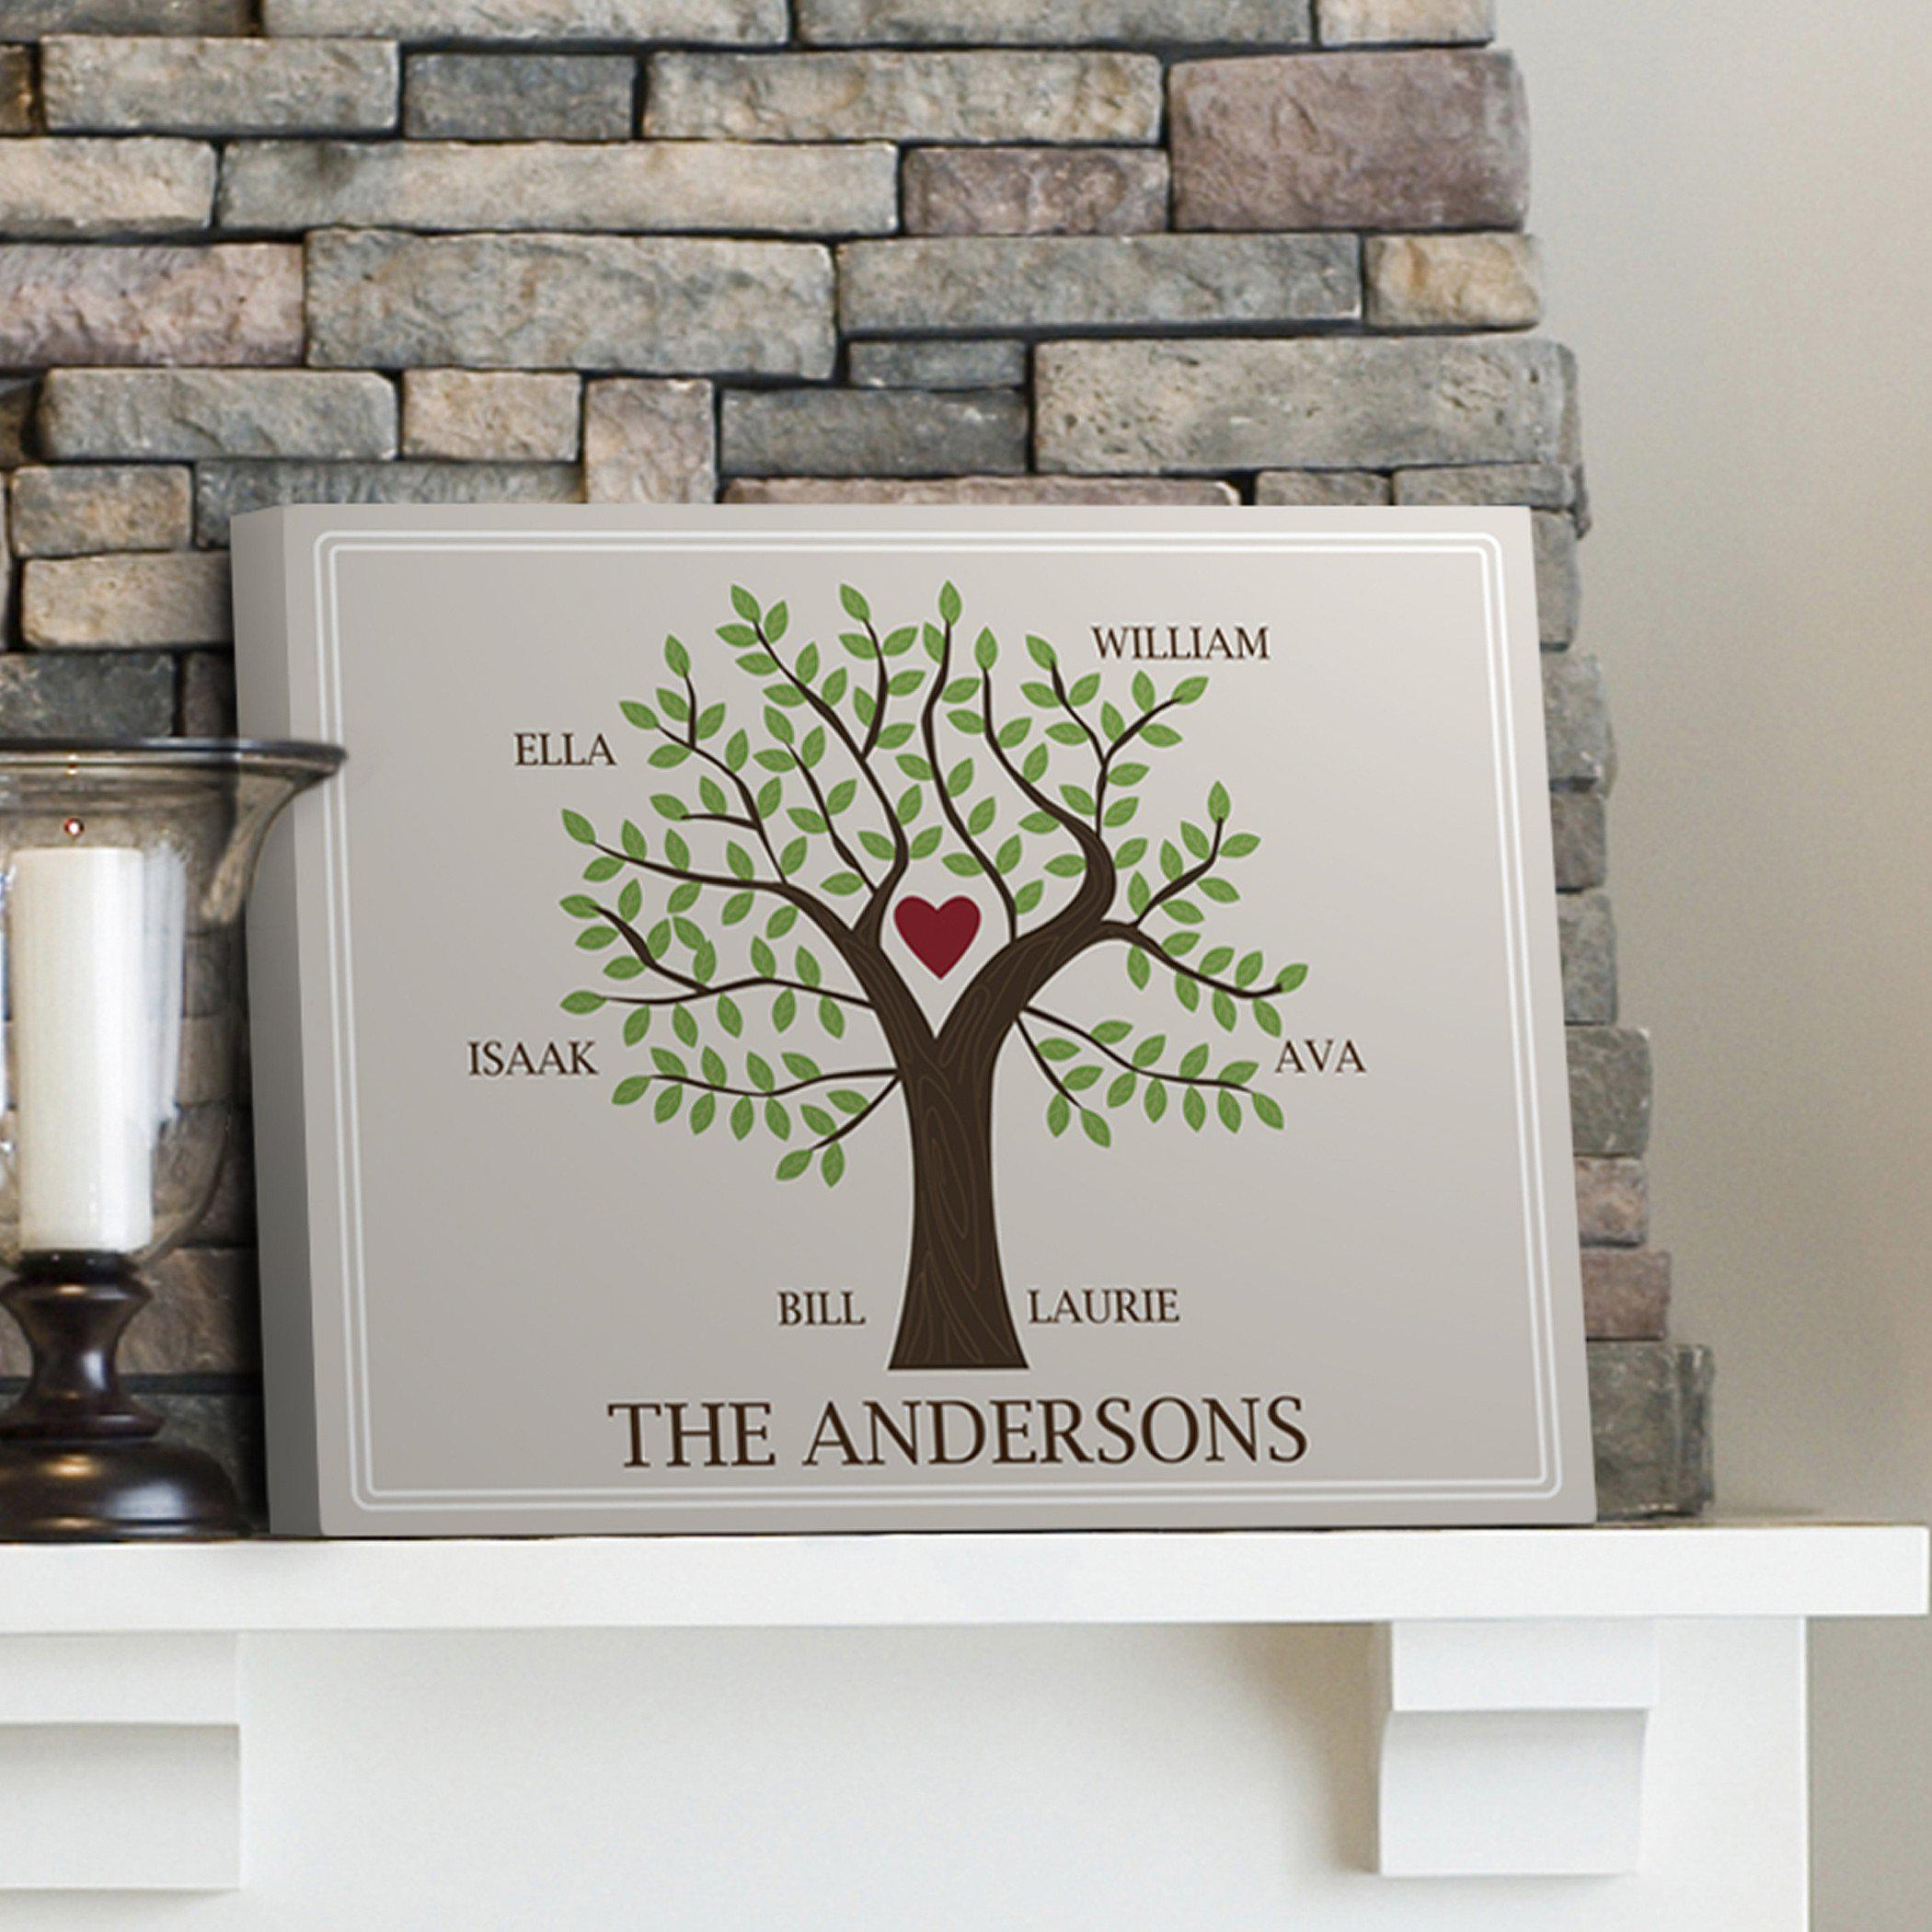 Personalized Family Tree Sign - Multiple Designs